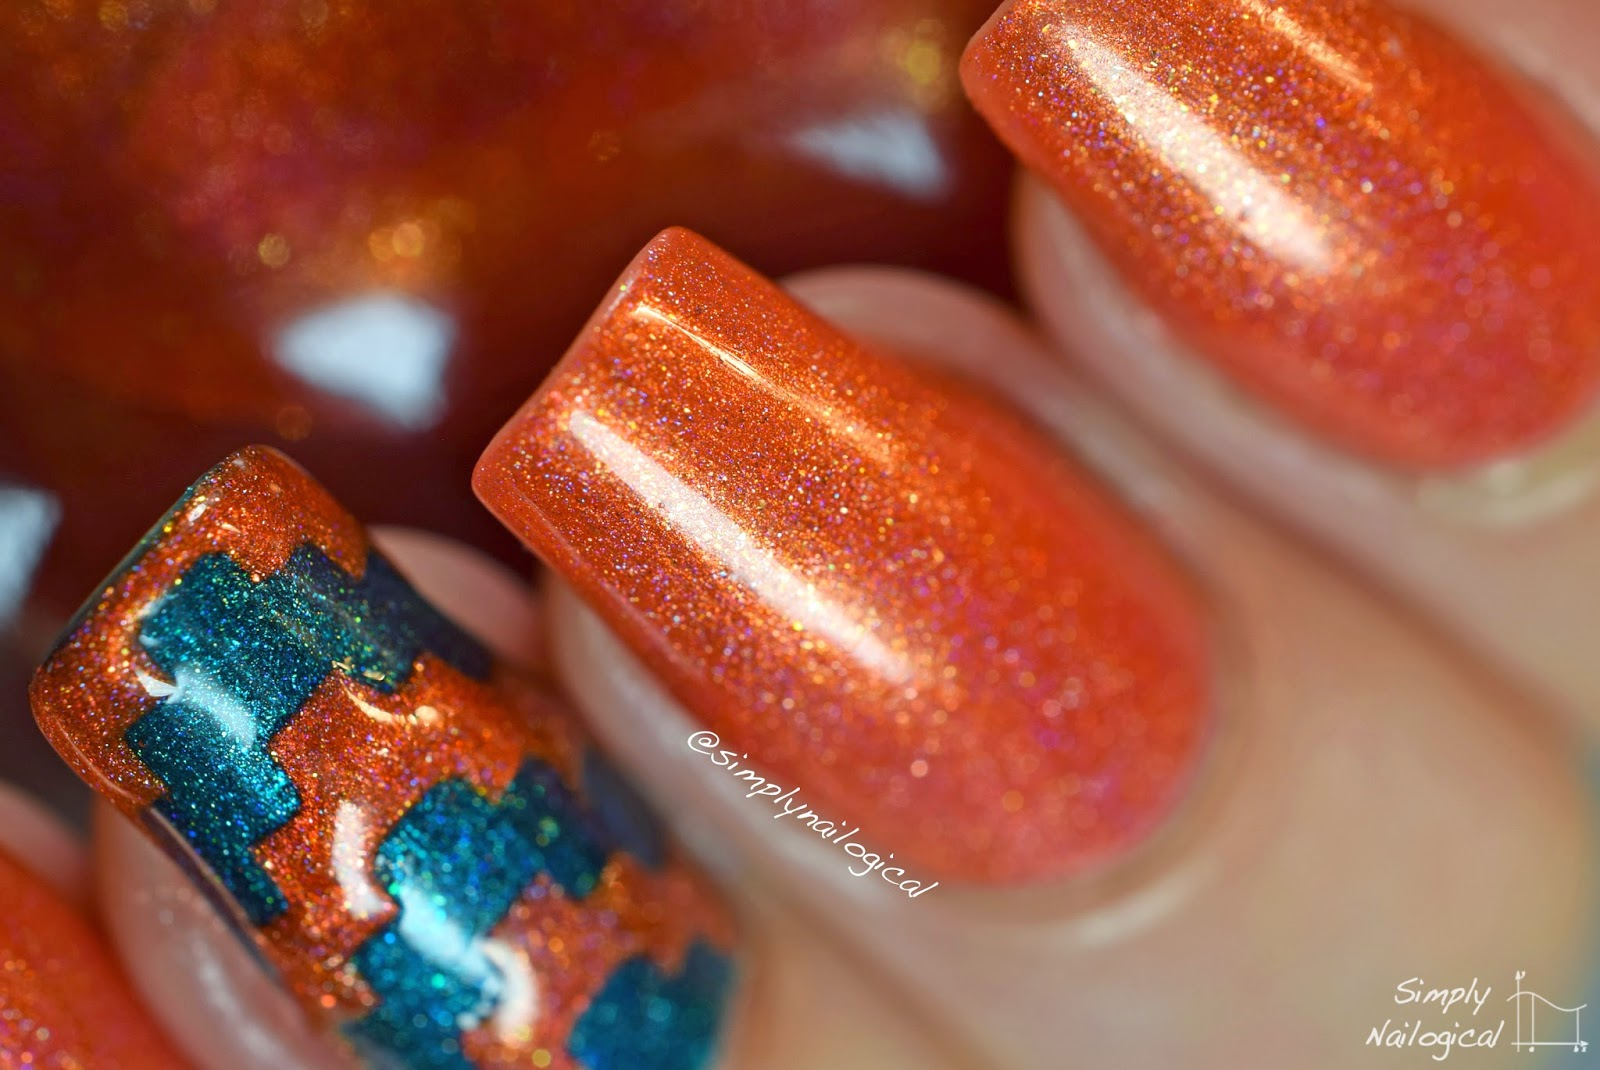 Atomic Sherbert - ILNP Fall 2014 collection